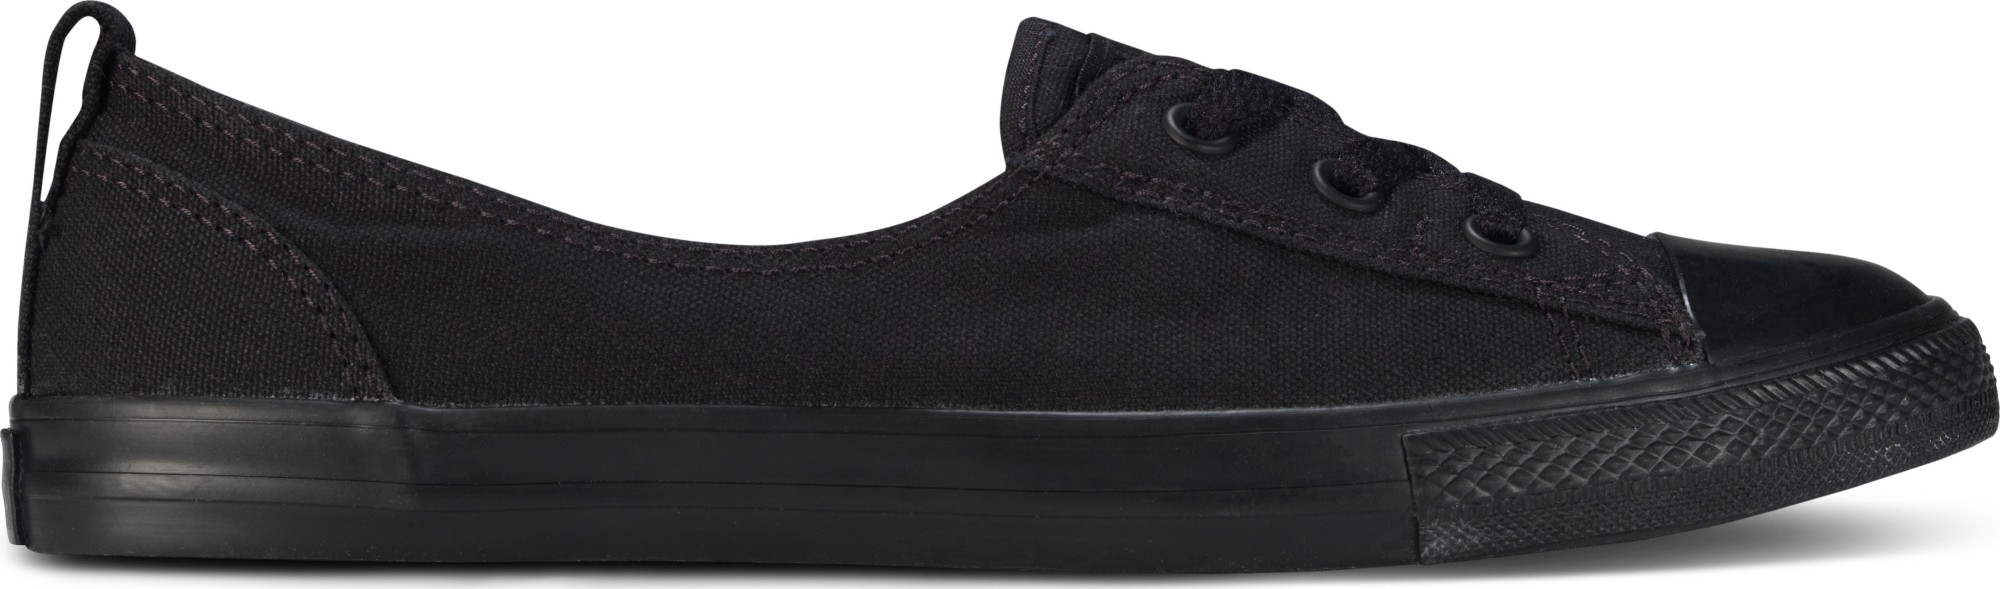 c9c5869048a6 Converse Chuck Taylor All Star Ballet Lace